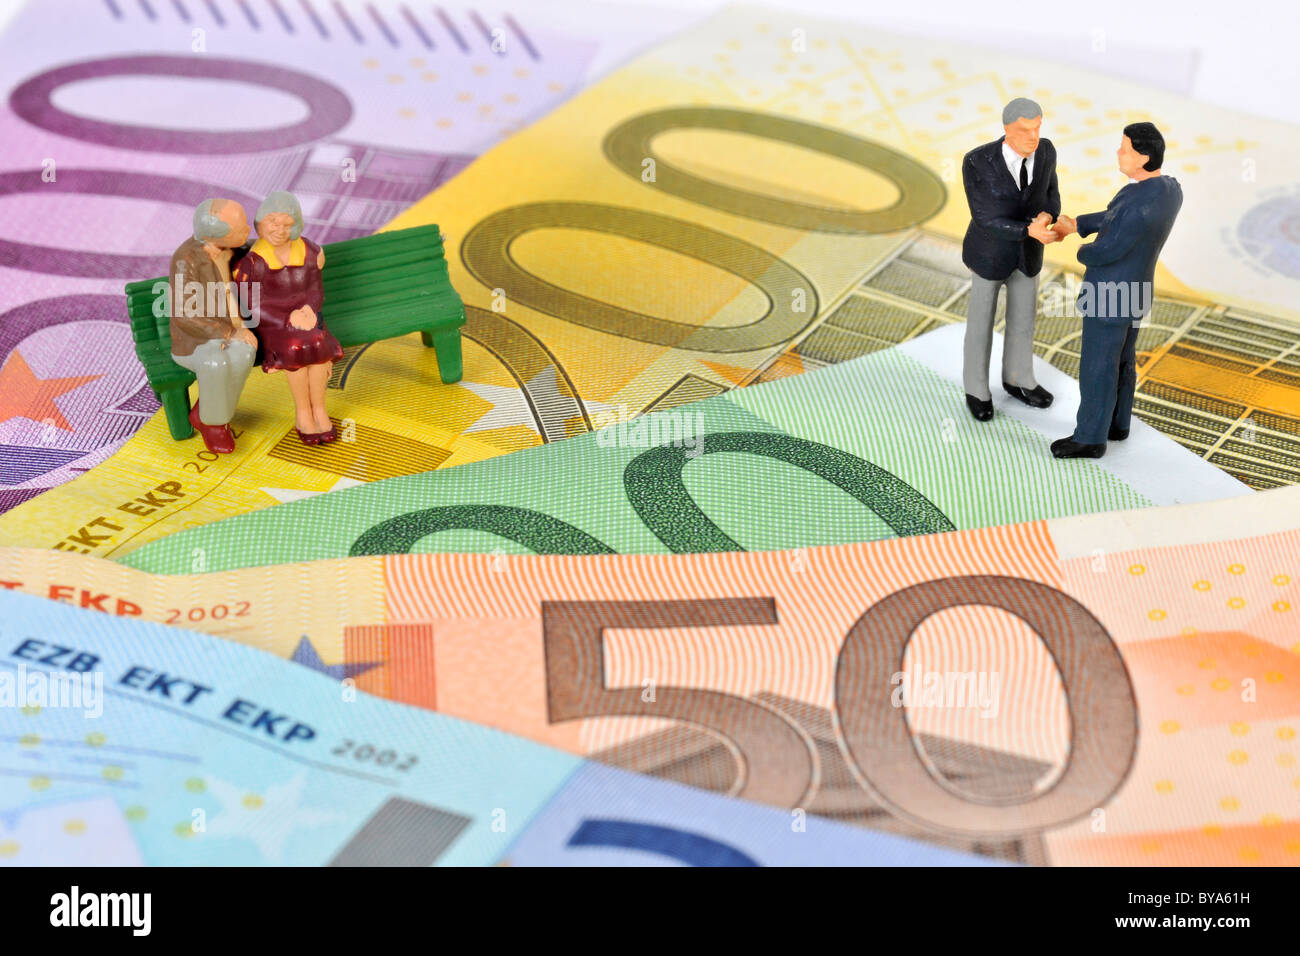 Figurines, pensioners sitting on a bench on euro banknotes, businessmen, politicians, symbolic image for pension - Stock Image